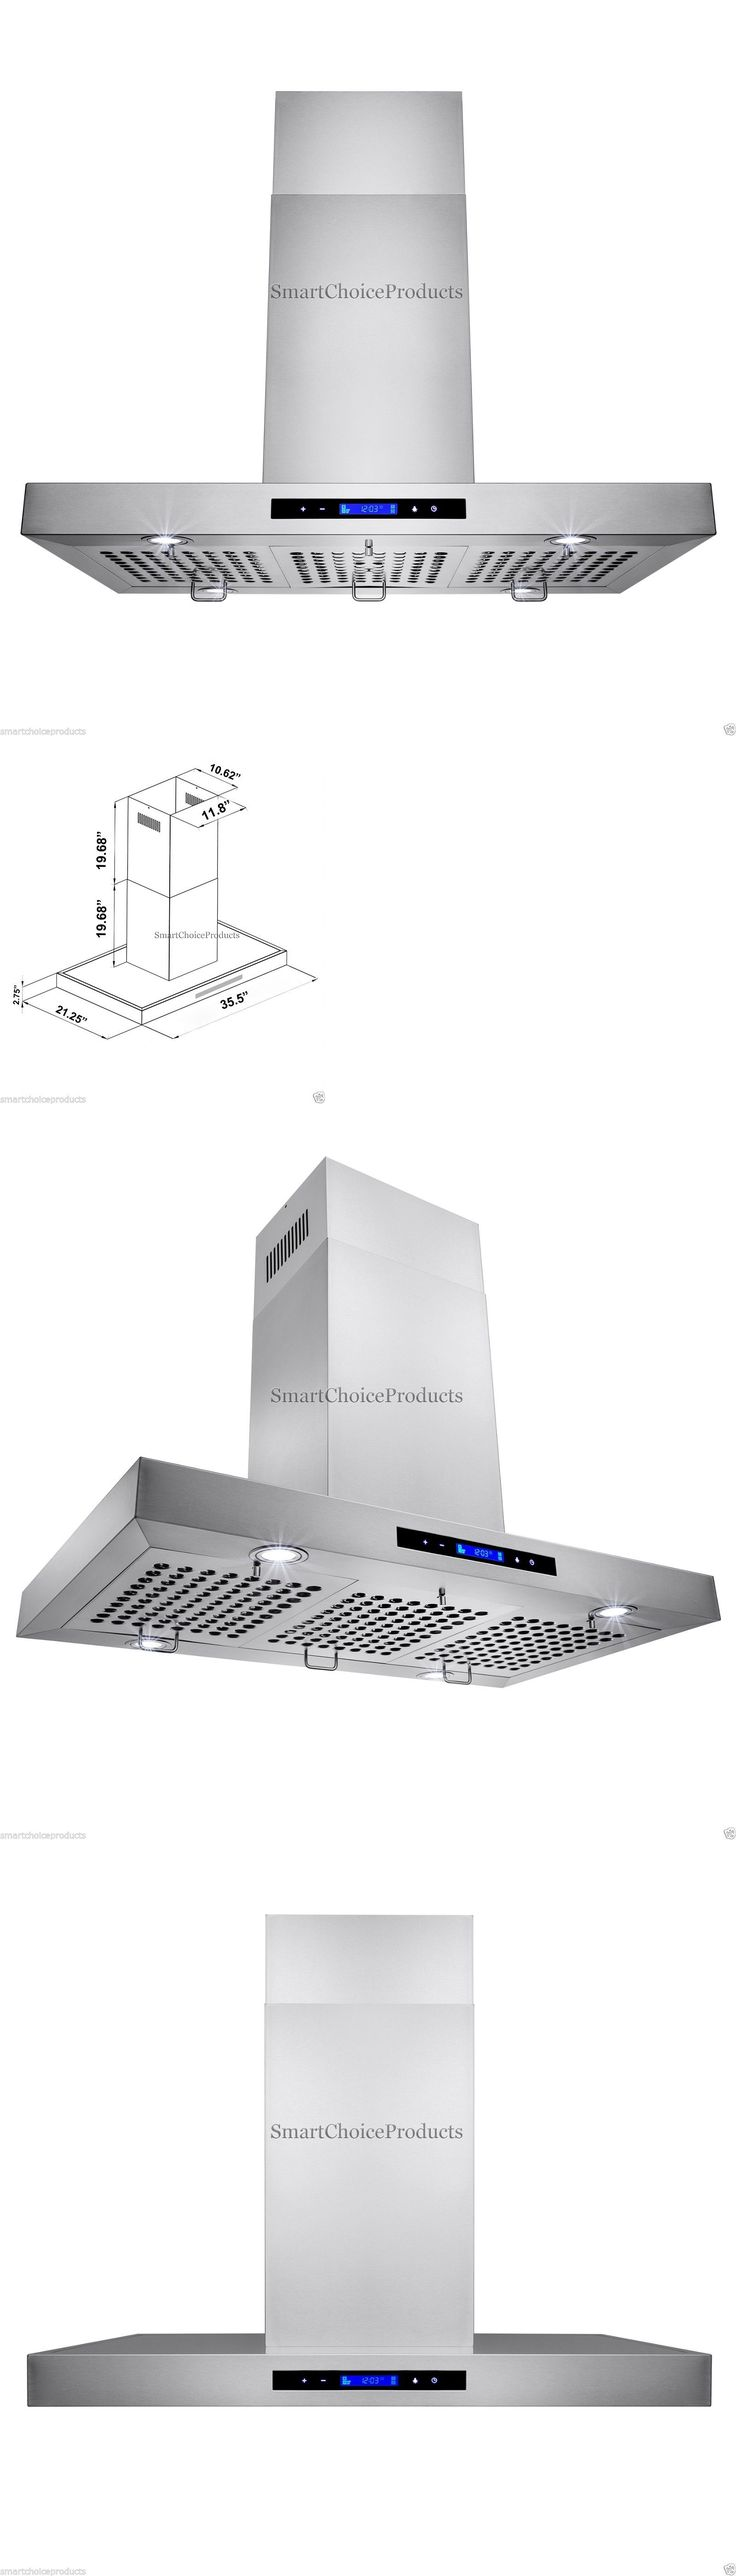 Major Appliances: New 36 Kitchen Island Mount Stainless Steel Range Hood Vent W/ Baffle Filters BUY IT NOW ONLY: $299.99